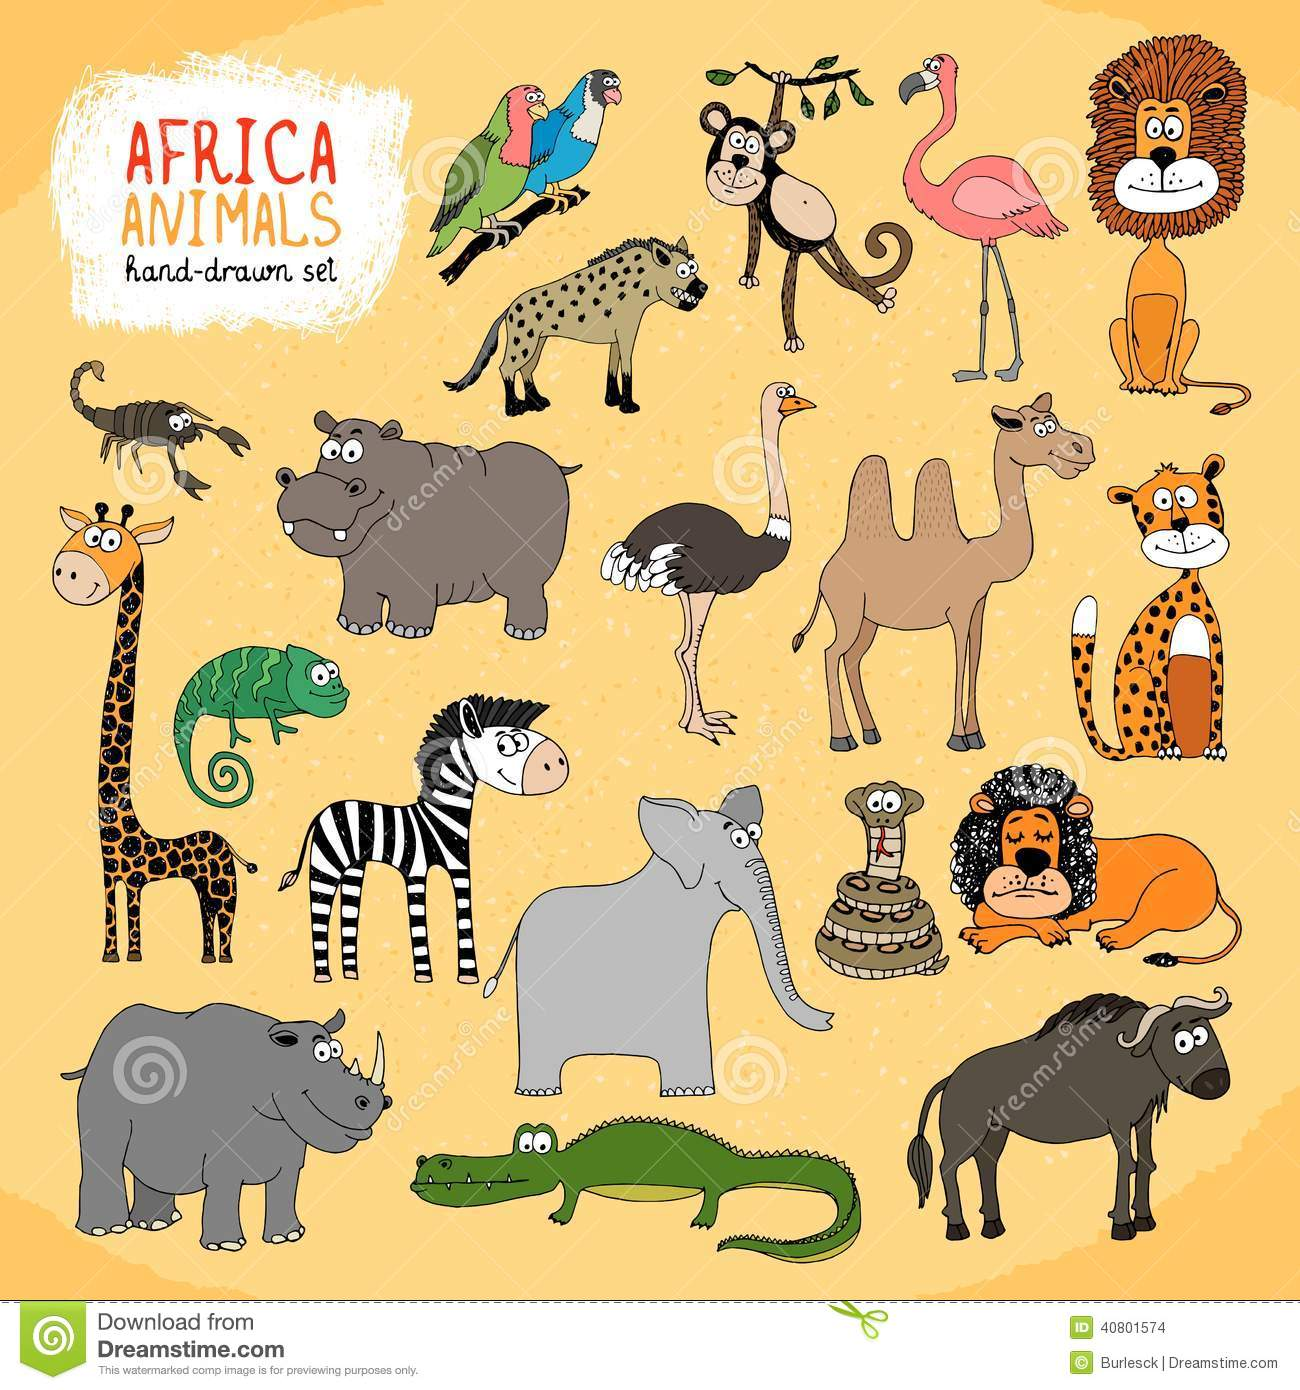 Animals Of Africa Hand drawn Illustration Stock Vector Image 40801574